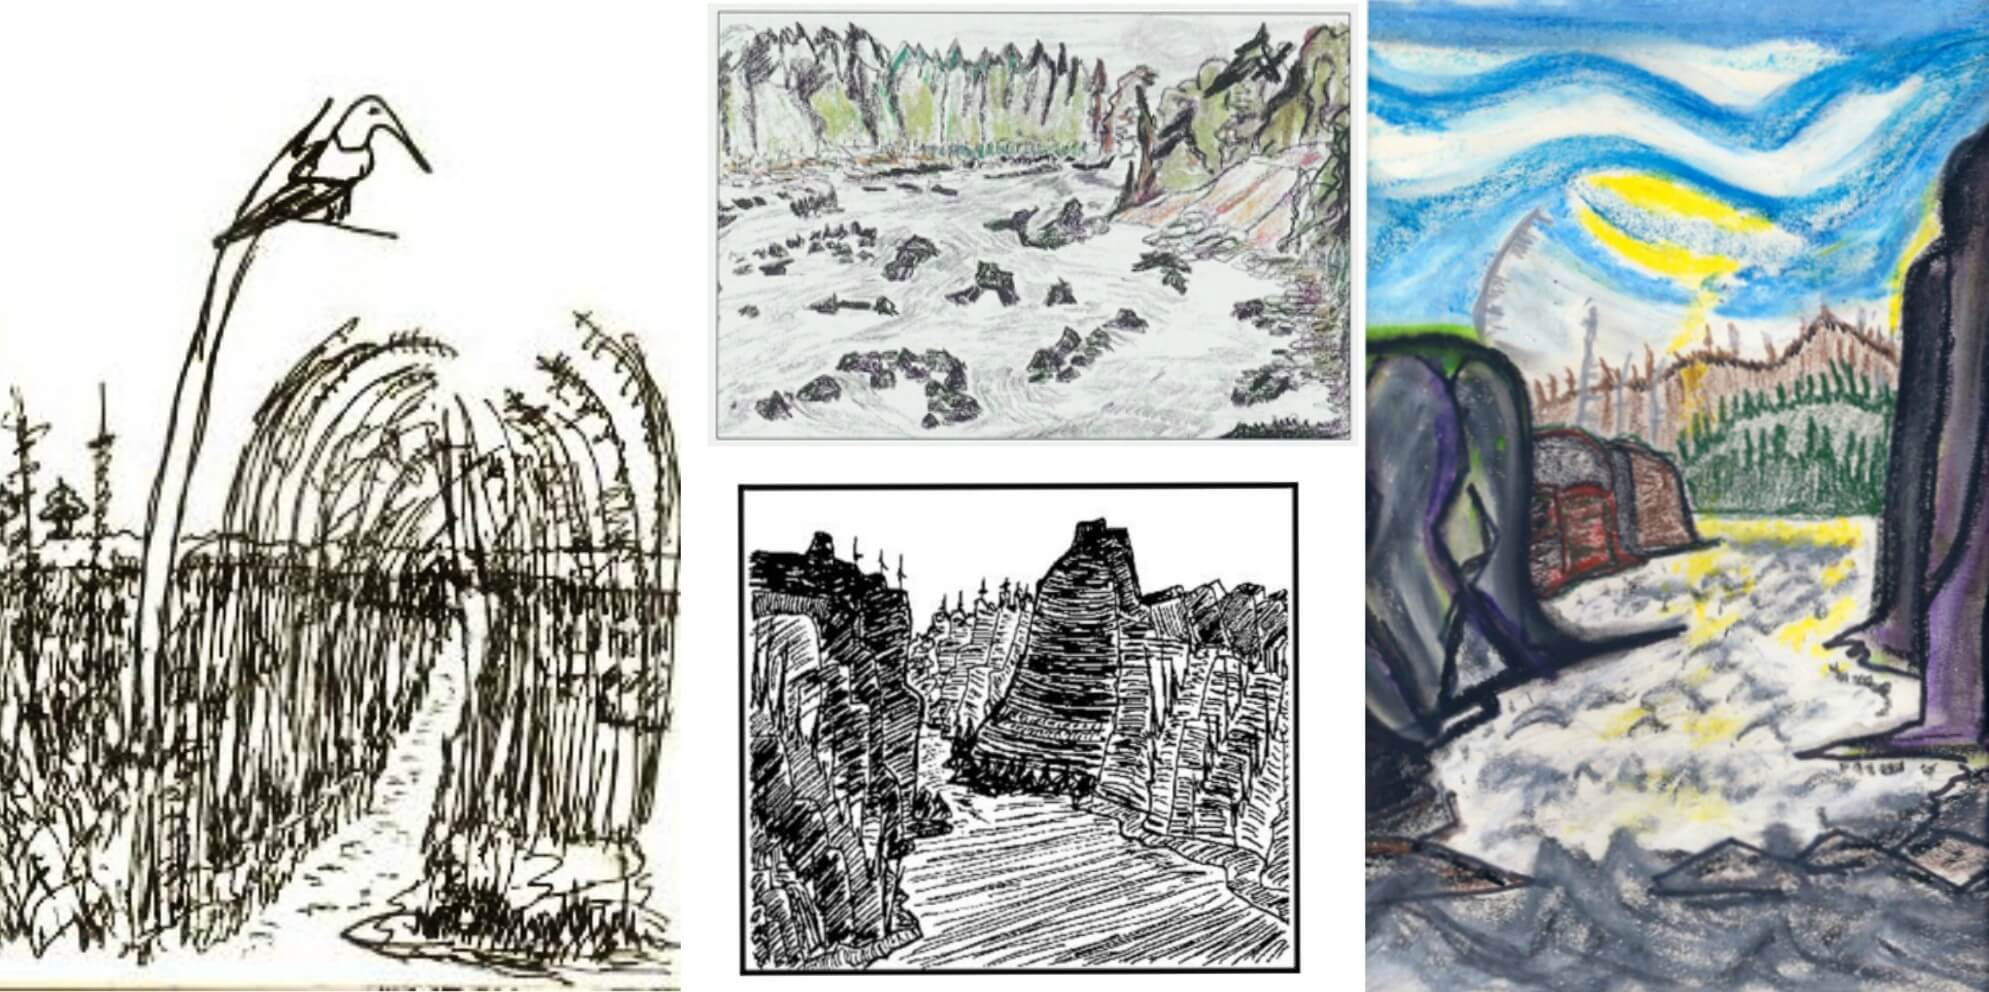 EastFallsLocal Berger Sketch COLLAGE 2